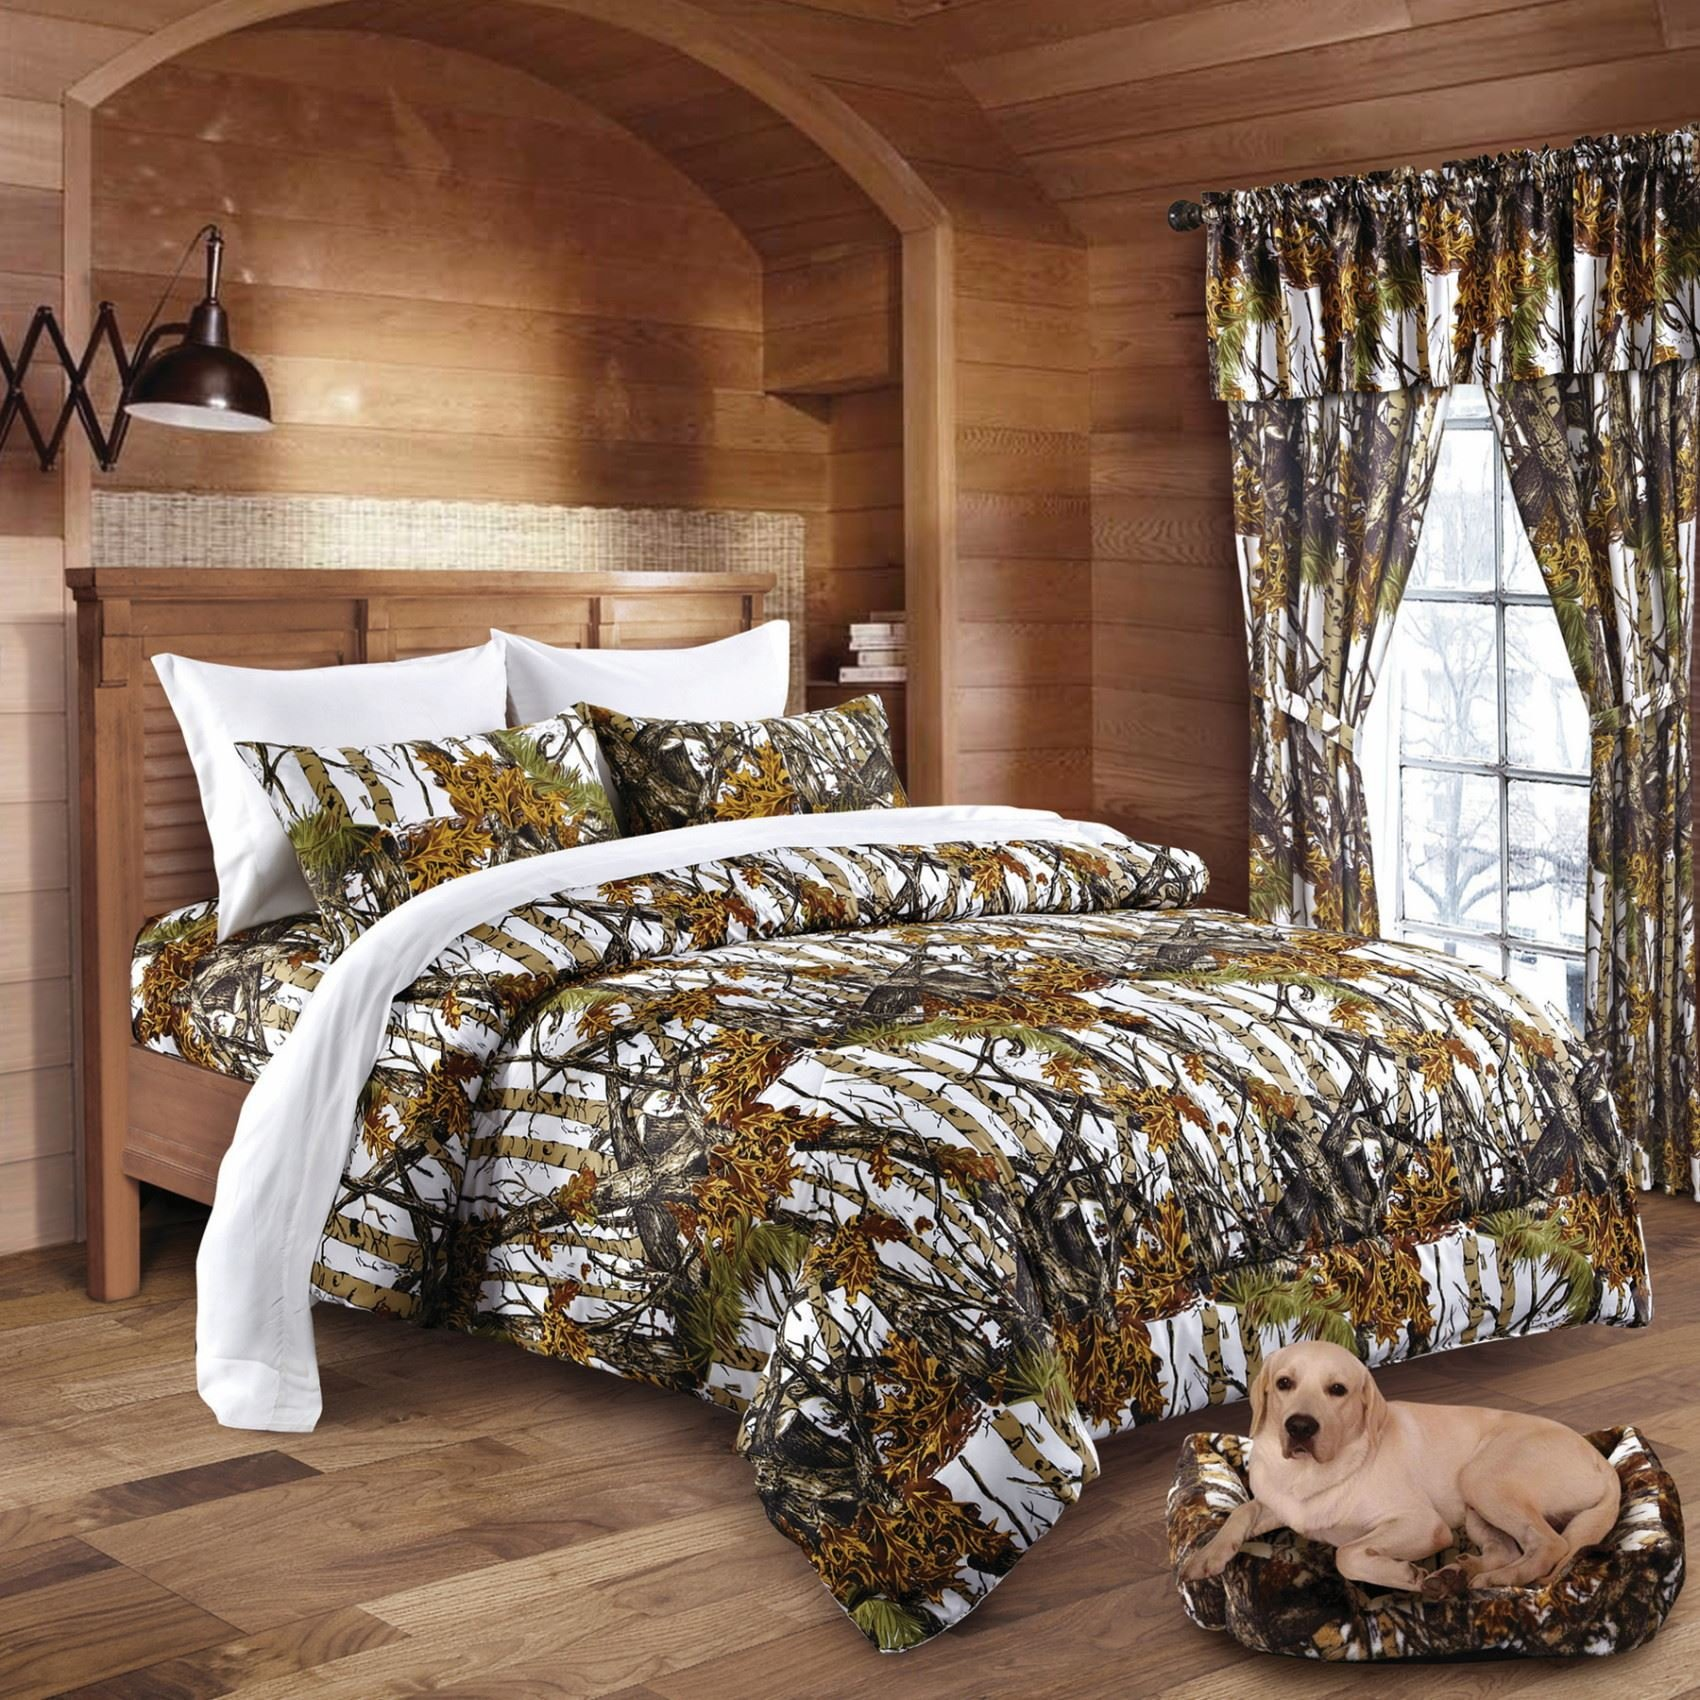 20 Lakes The Woods White Camo Comforter - King by 20 Lakes (Image #1)